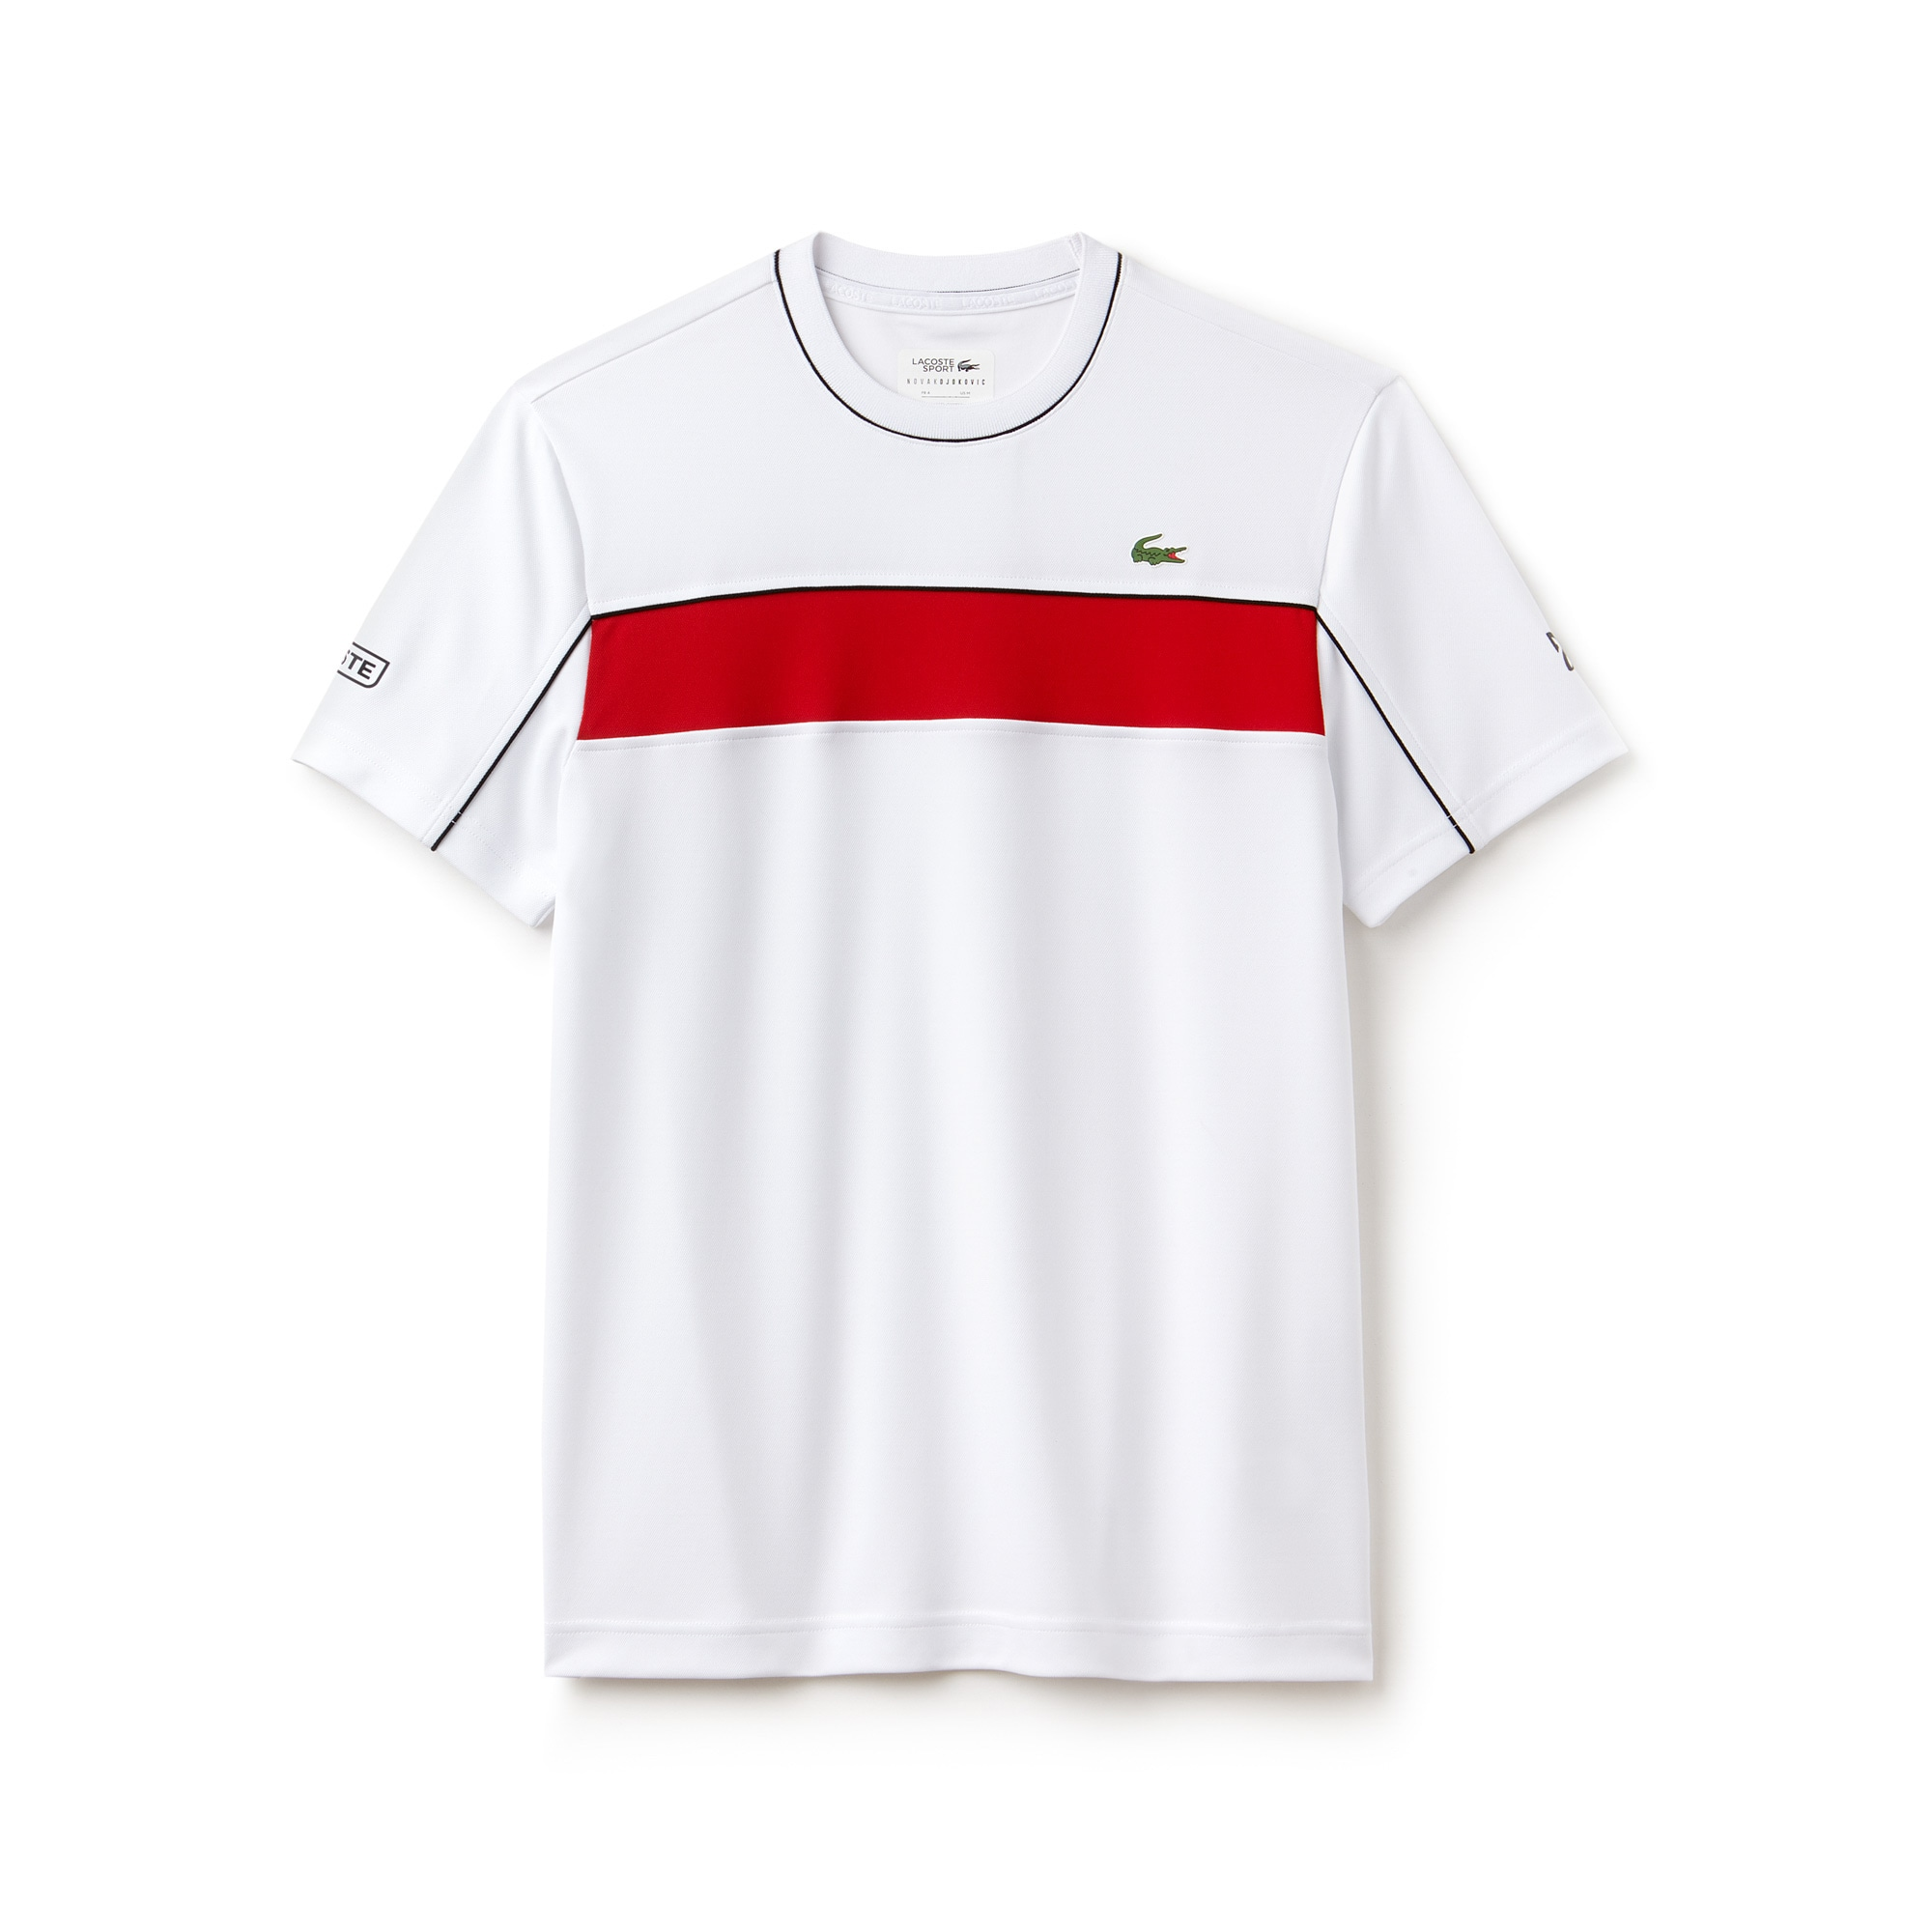 Men's SPORT Piqué T-Shirt - Novak Djokovic Collection